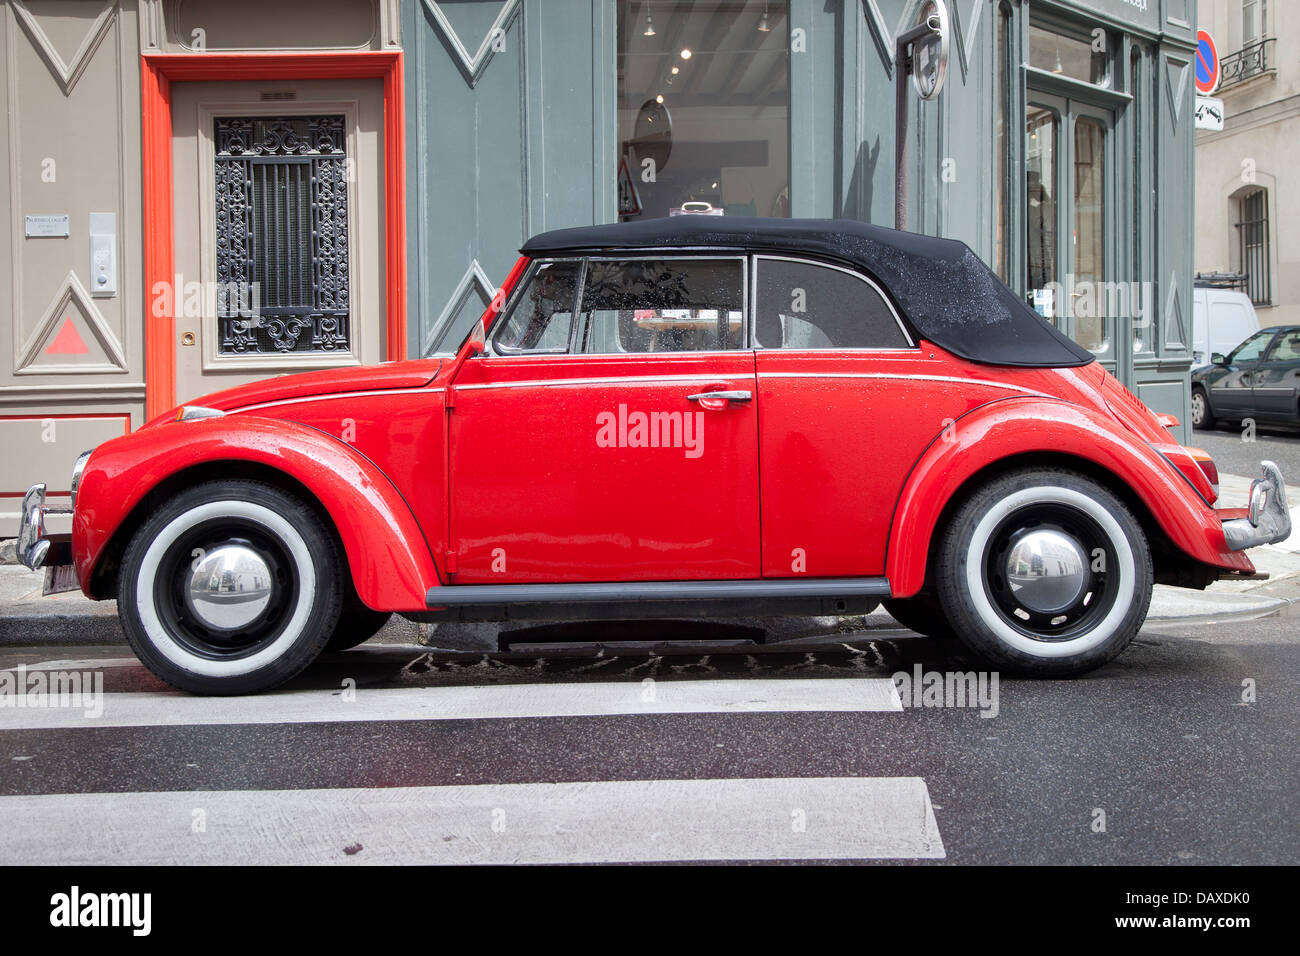 Red Volkswagen Beetle parked in front of consignment shop in the ...